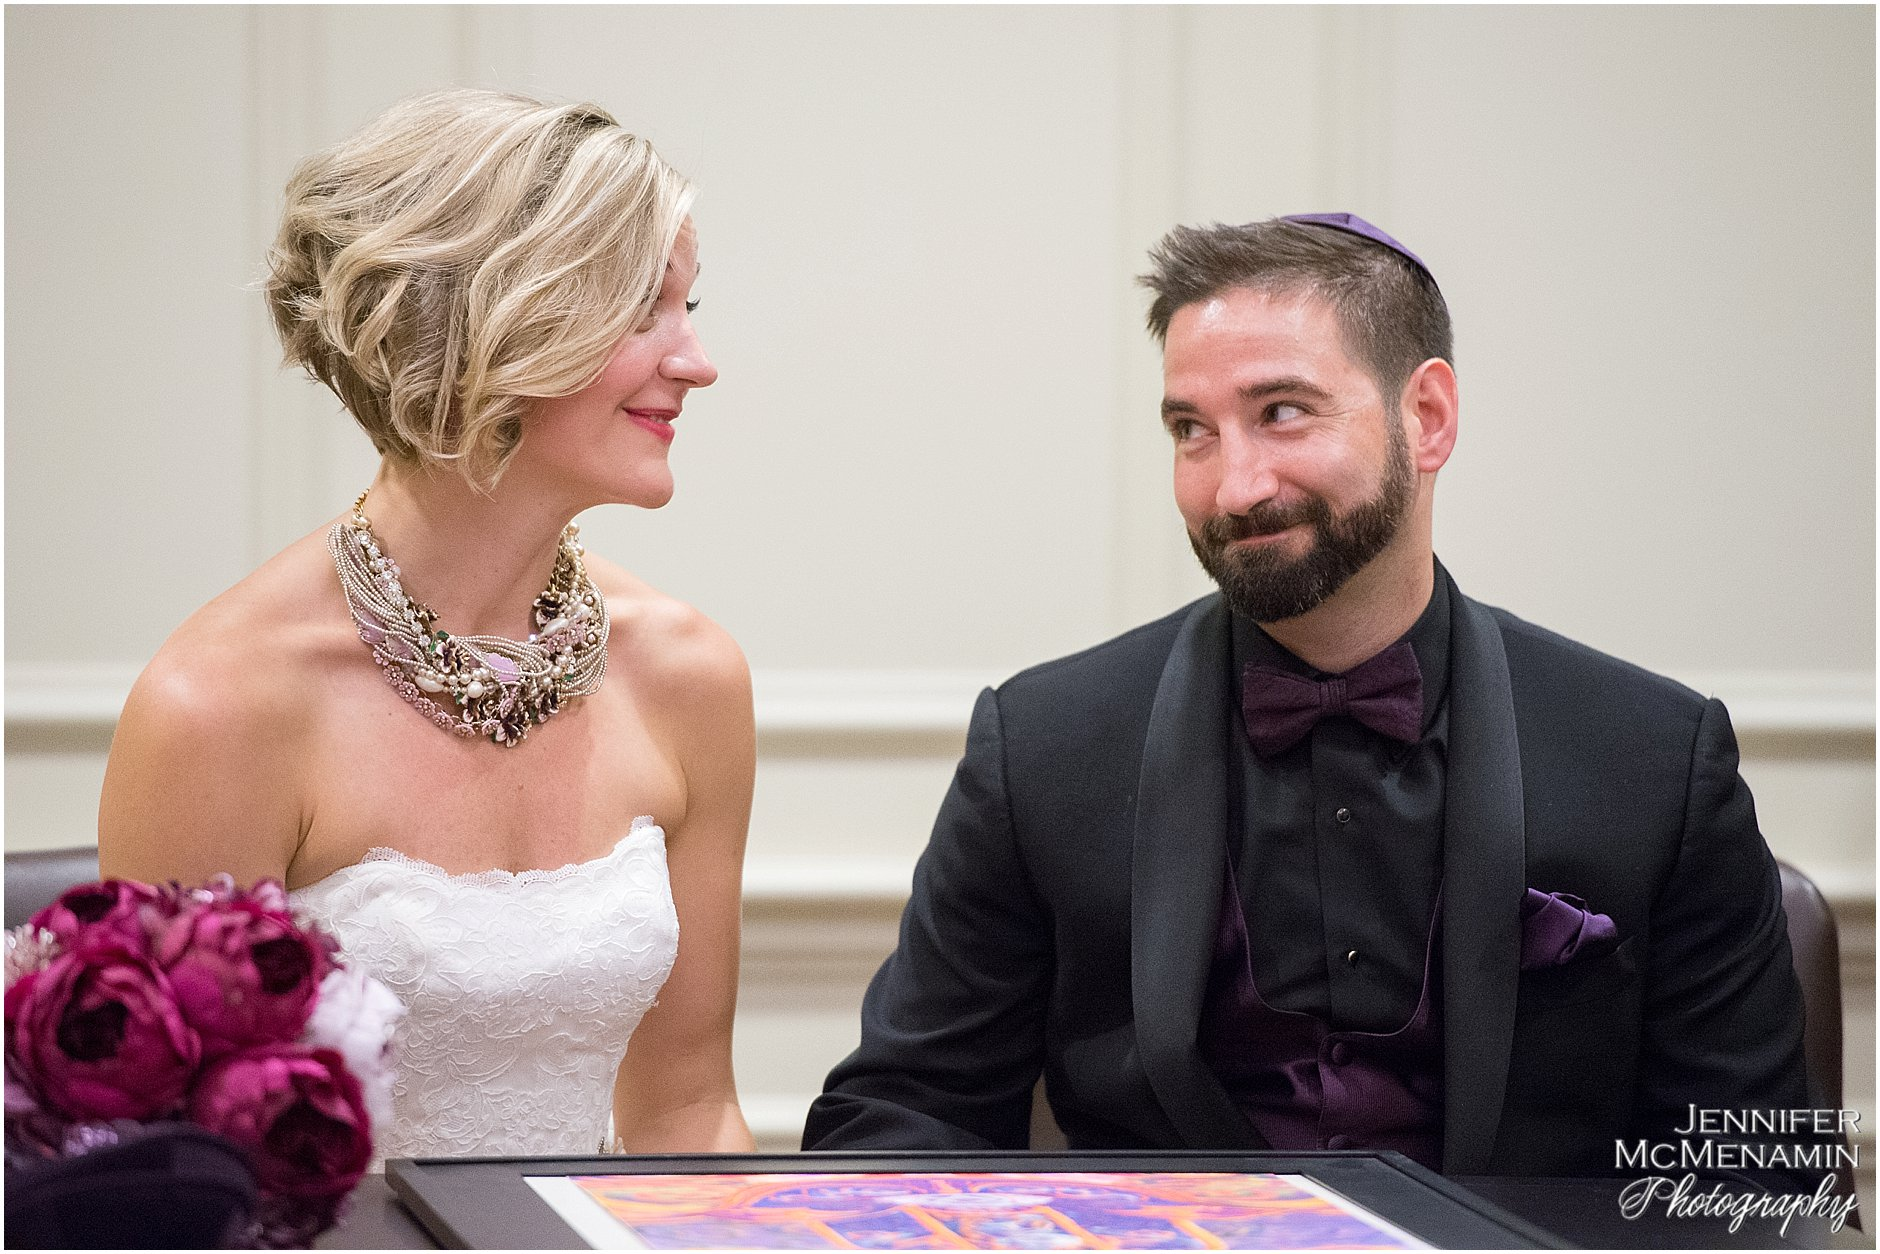 022-MorrisPustilnik_01188-0201_Jennifer-McMenamin-Photography-Royal-Sonesta-Harbor-Court-Hotel-wedding-Baltimore-wedding-photographer